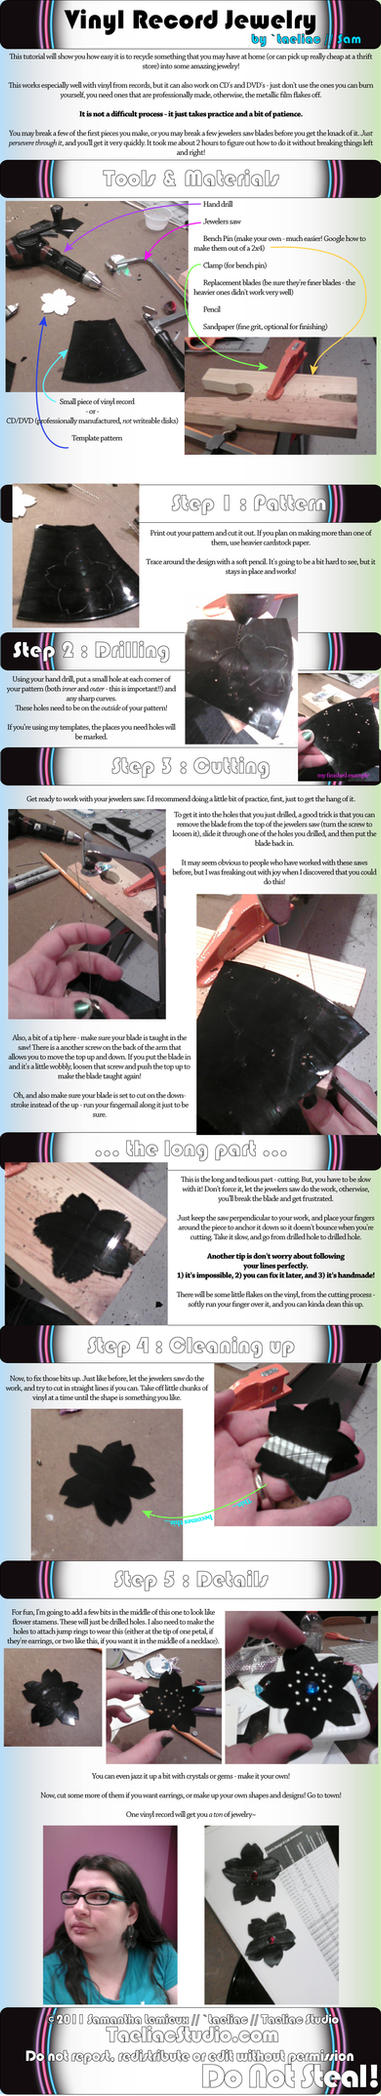 Tutorial: Vinyl Record Jewelry by taeliac